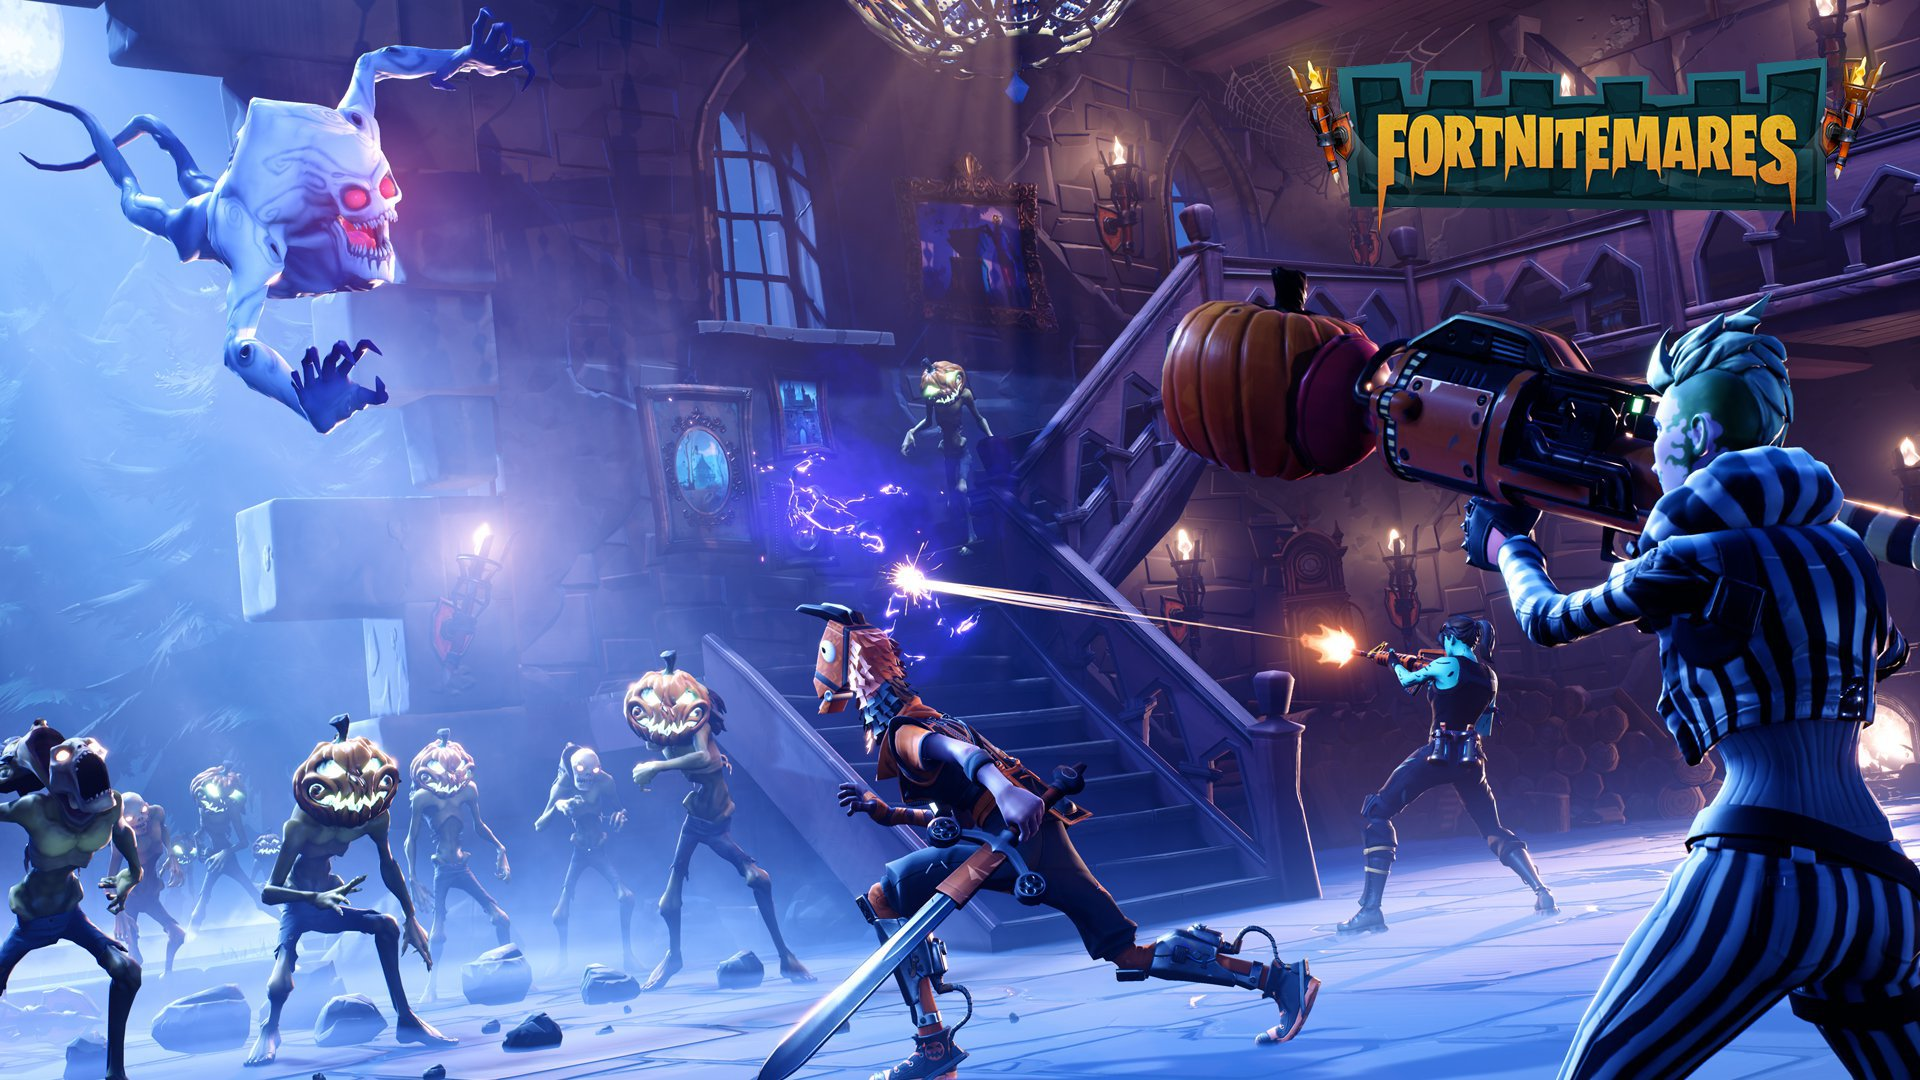 Fortnite, for the first time PvE mechanics have been included in the